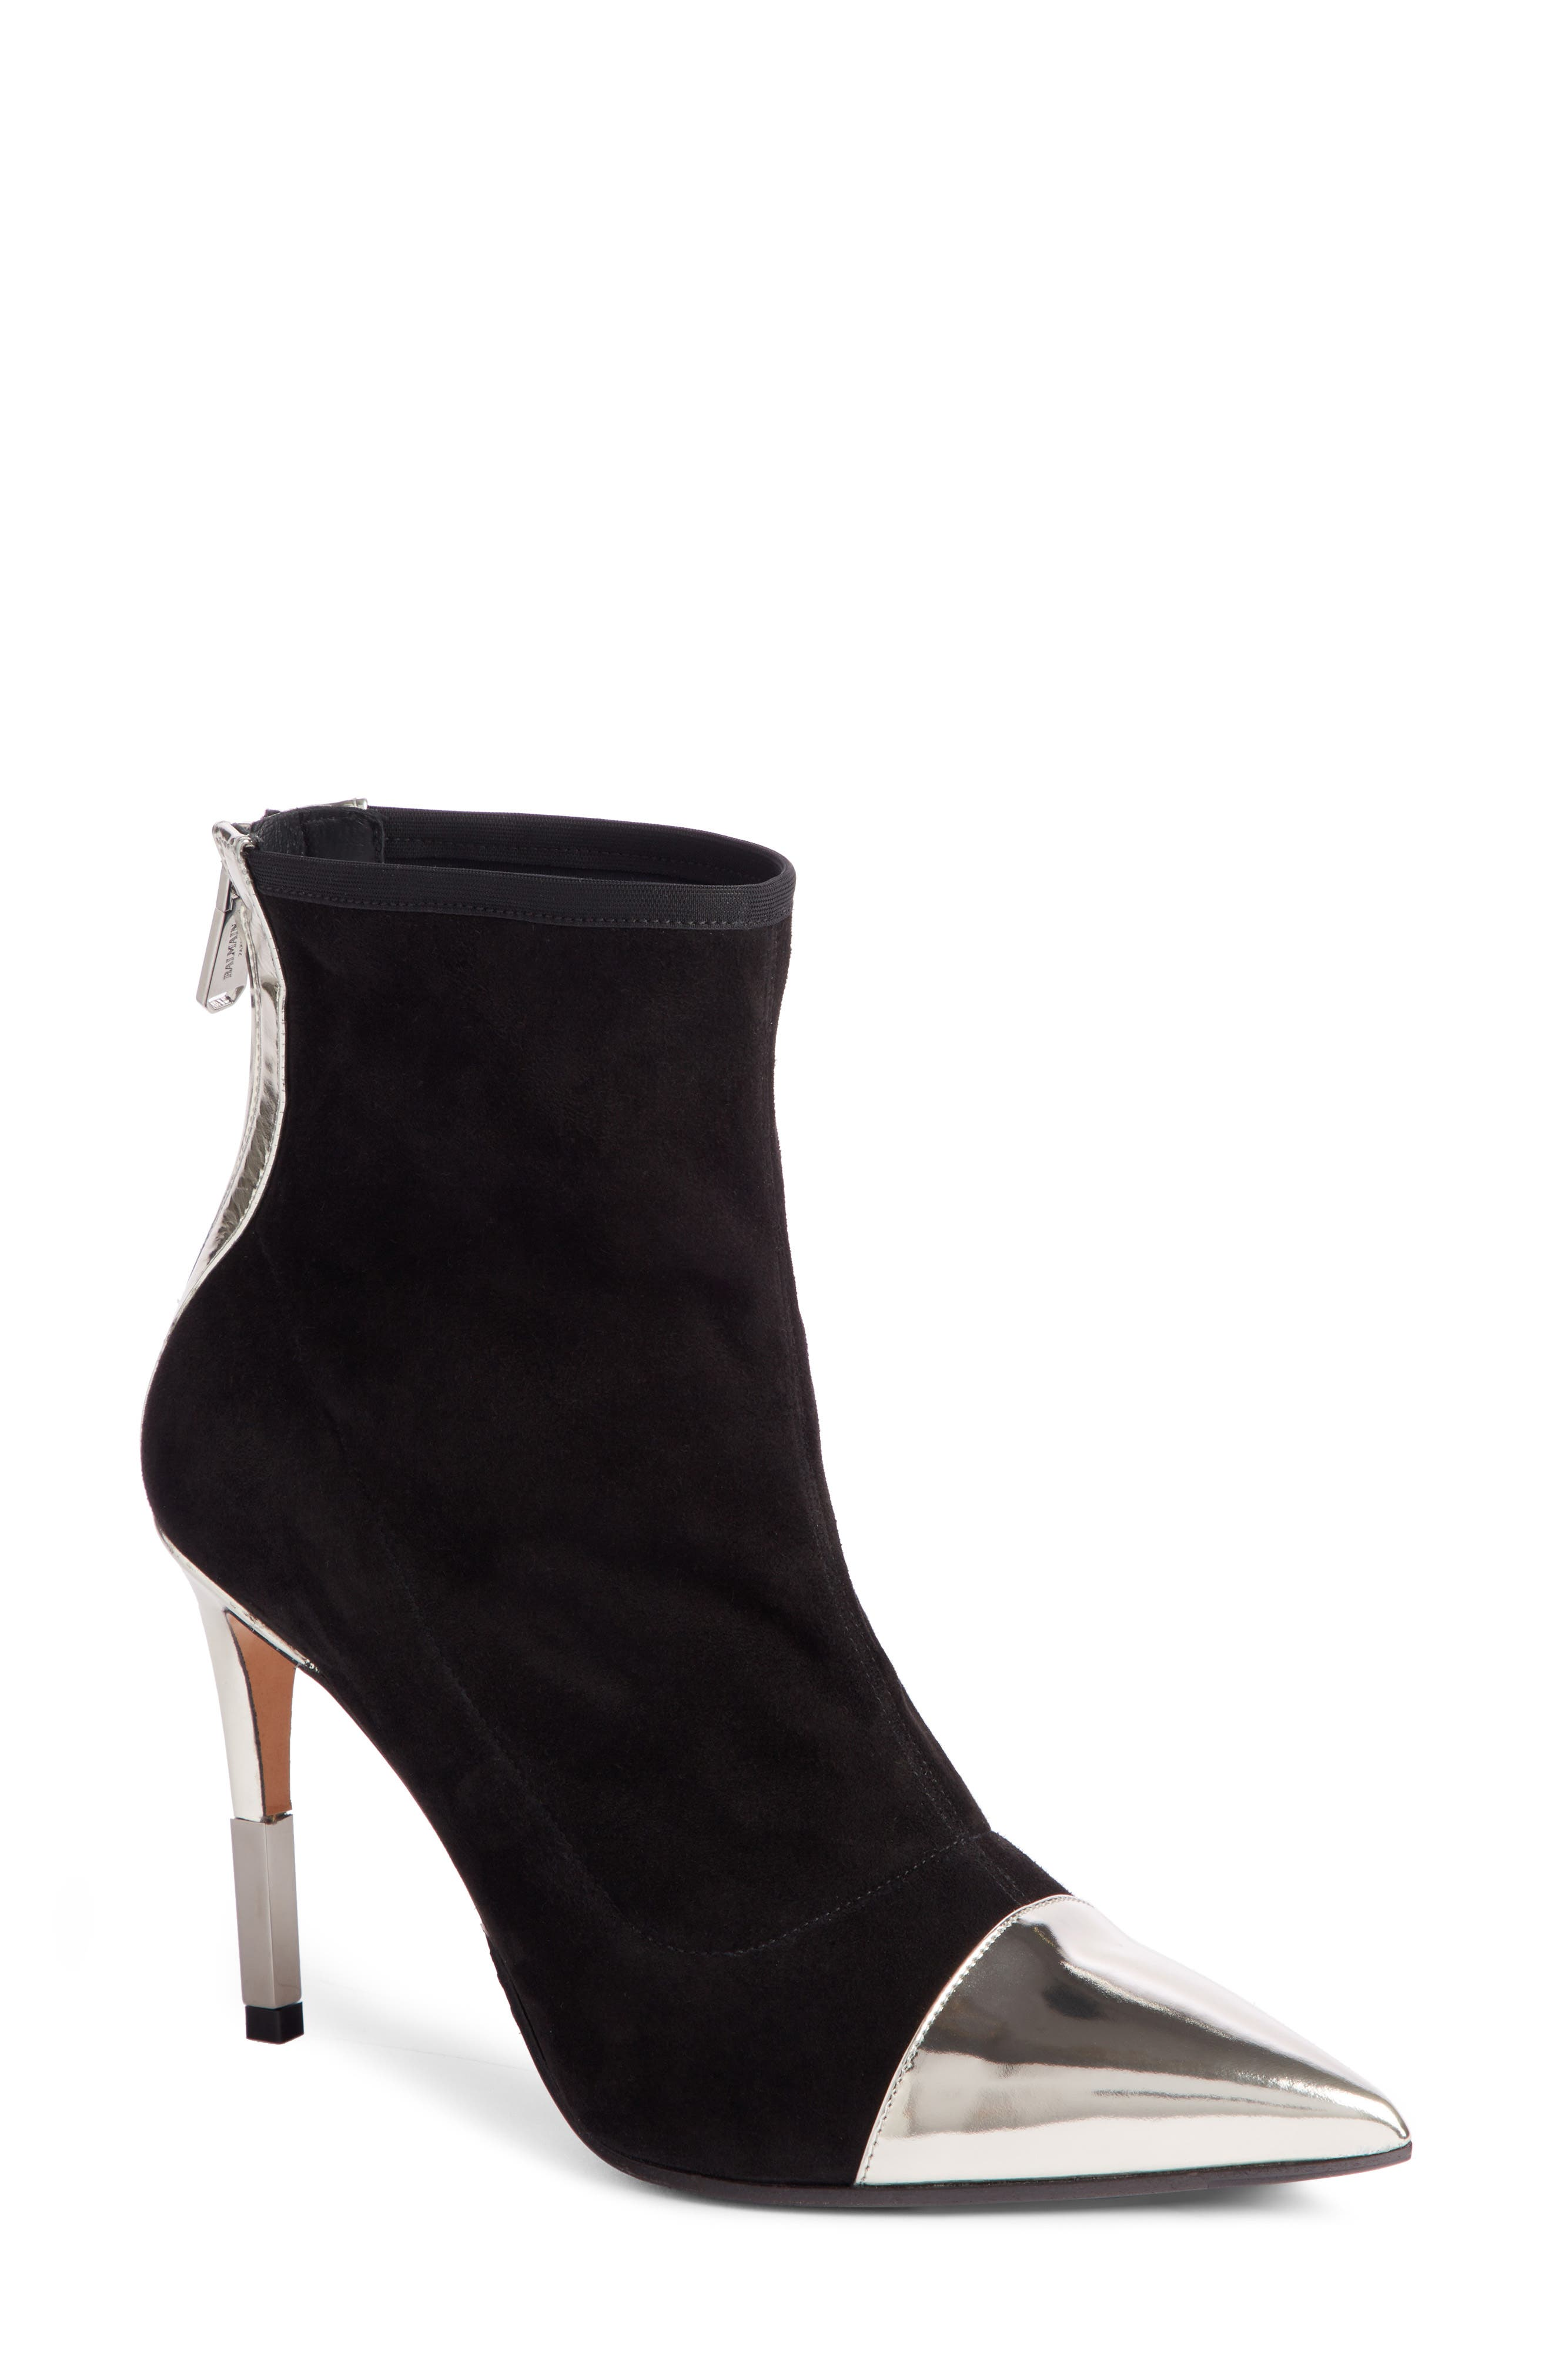 Blair Pointy Toe Bootie,                             Main thumbnail 1, color,                             BLACK/ SILVER